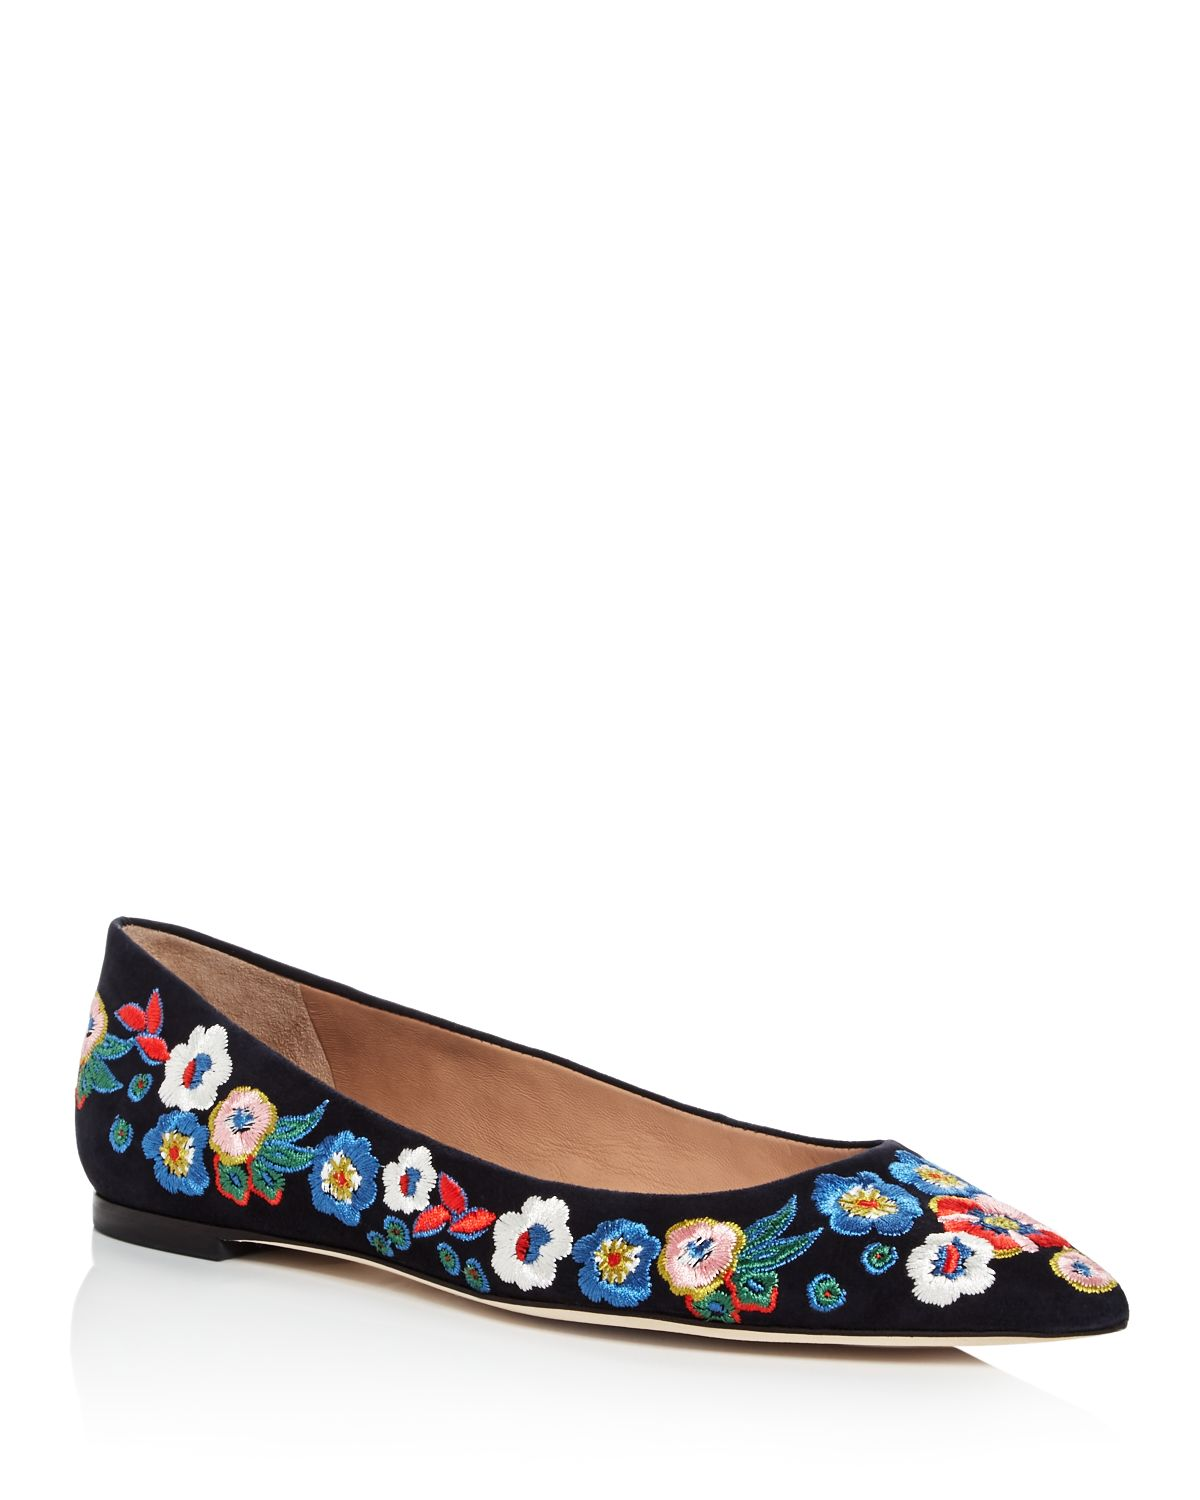 Tory Burch Women's Rosemont Embroidered Suede Pointed Toe Flats